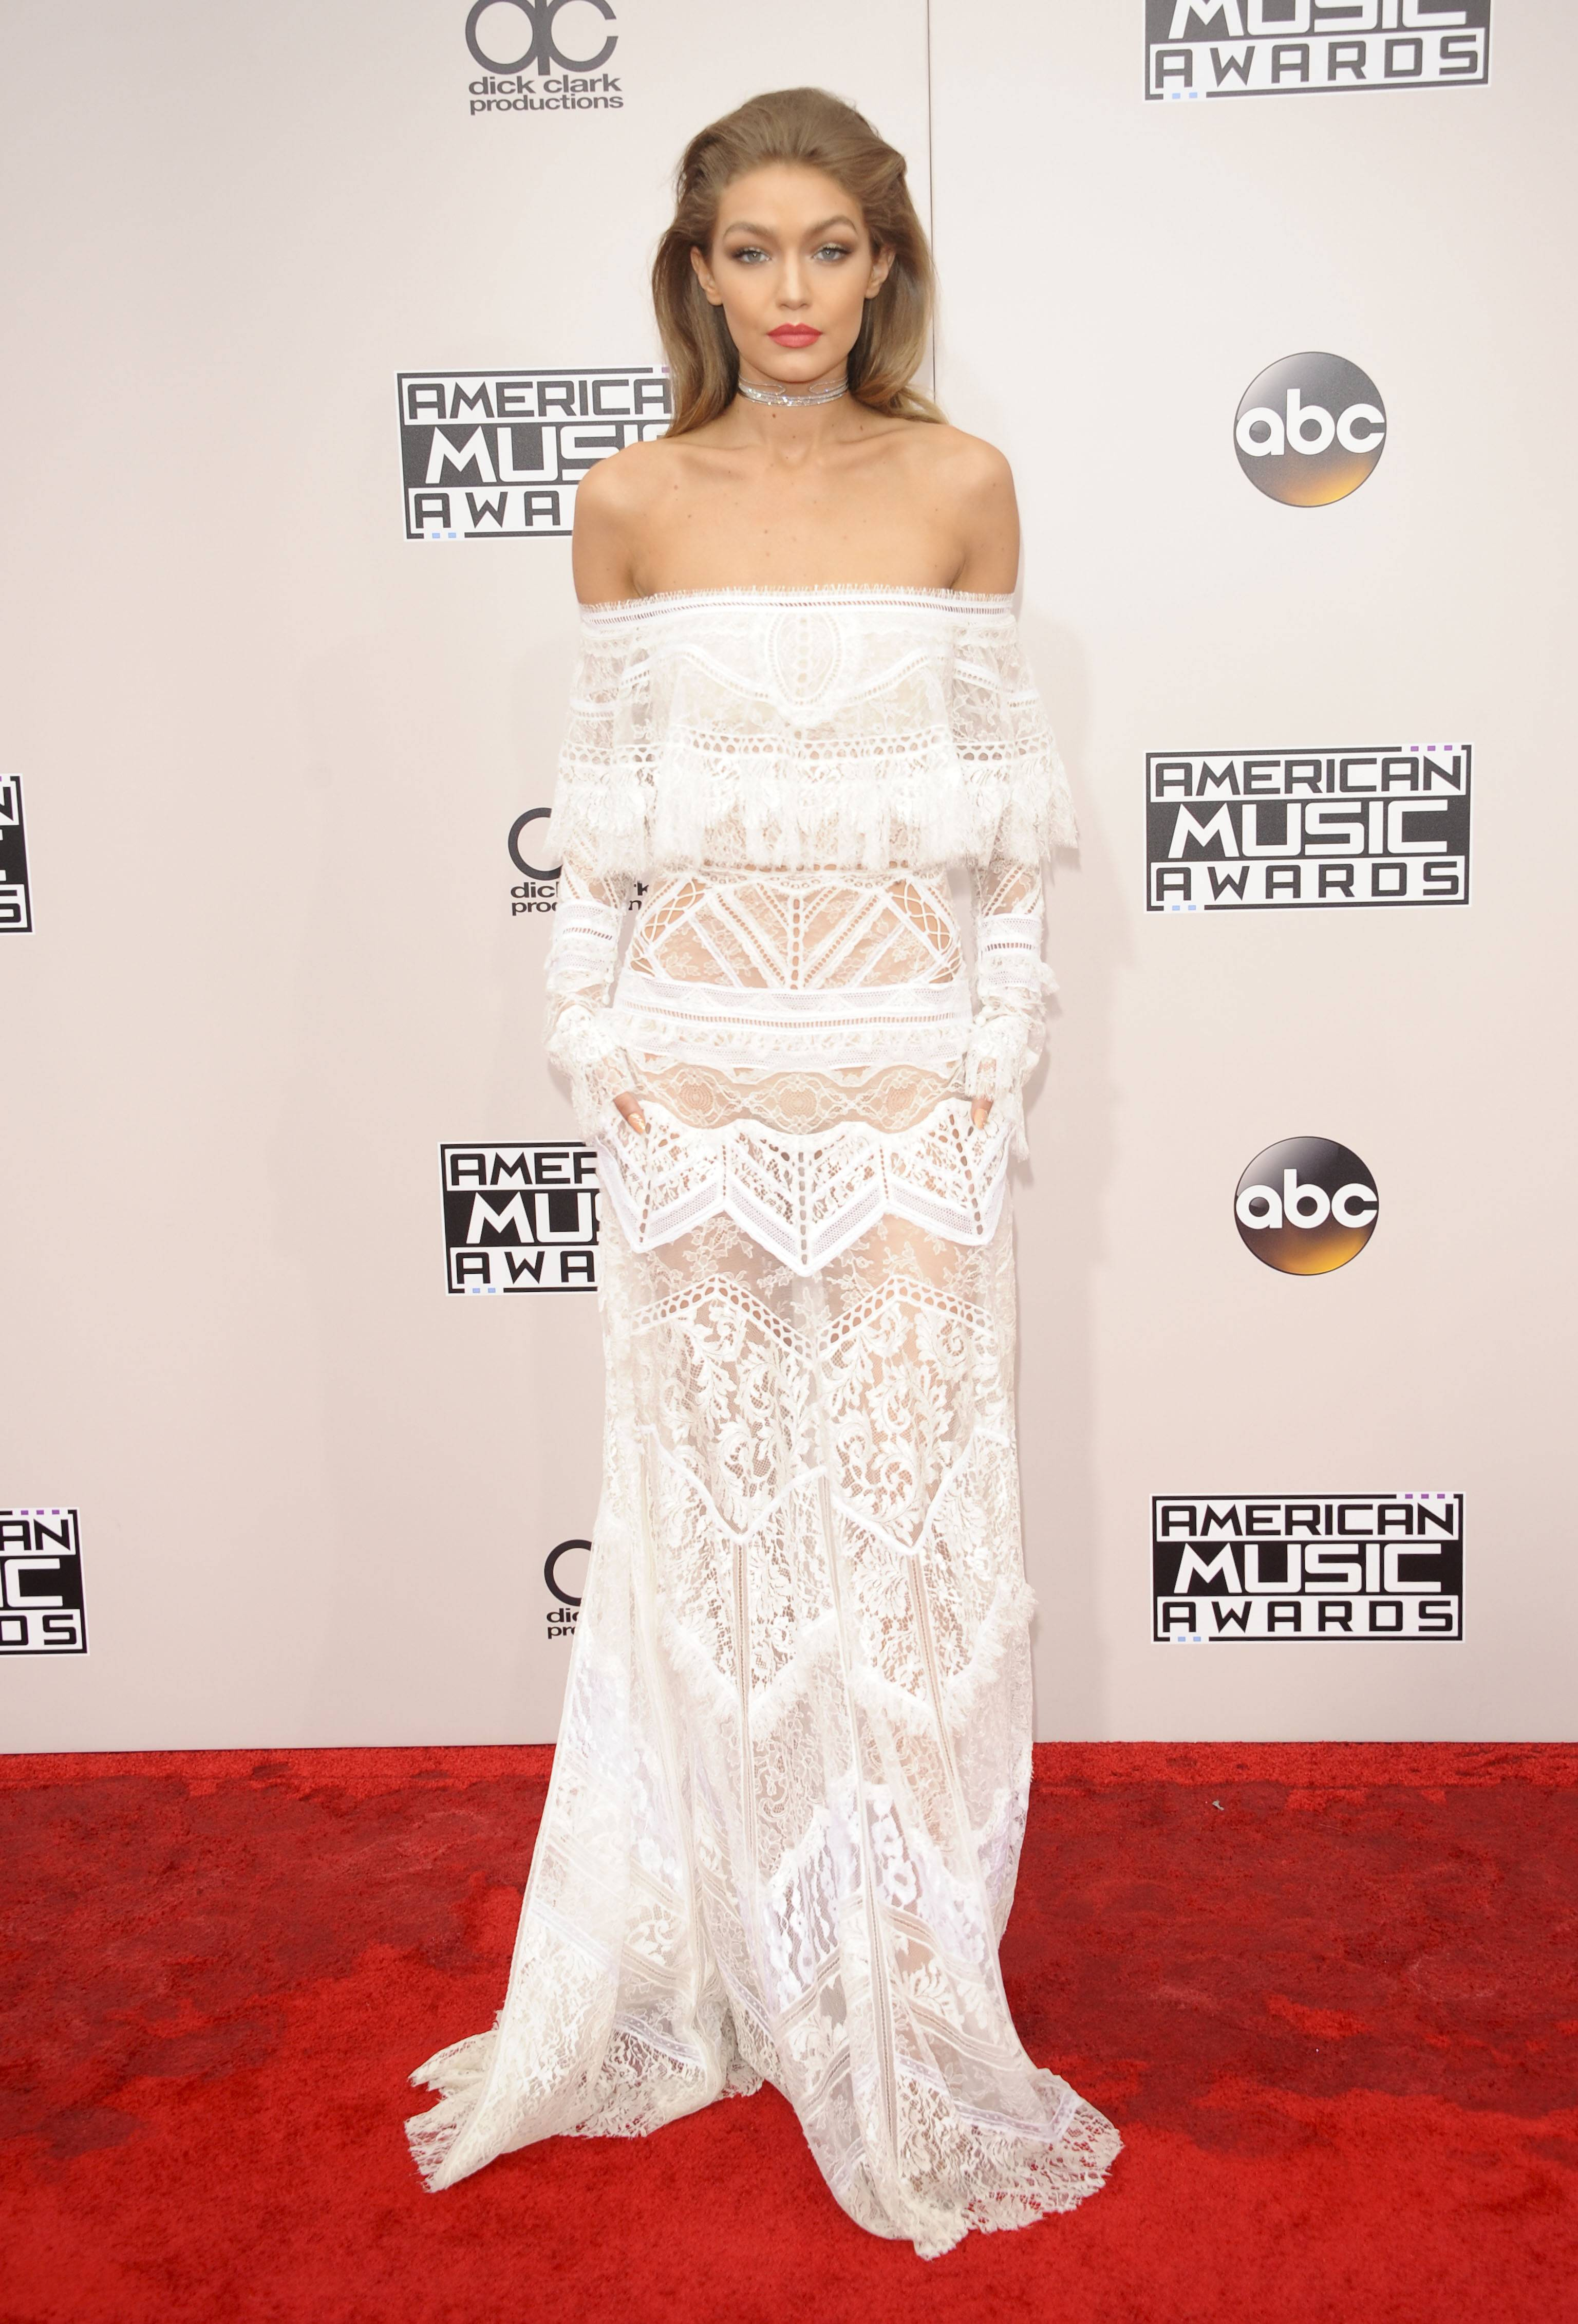 Gigi Hadid AMERICAN MUSIC AWARDS ARRIVALS Los Angeles Patrick Rideaux PicturePerfect